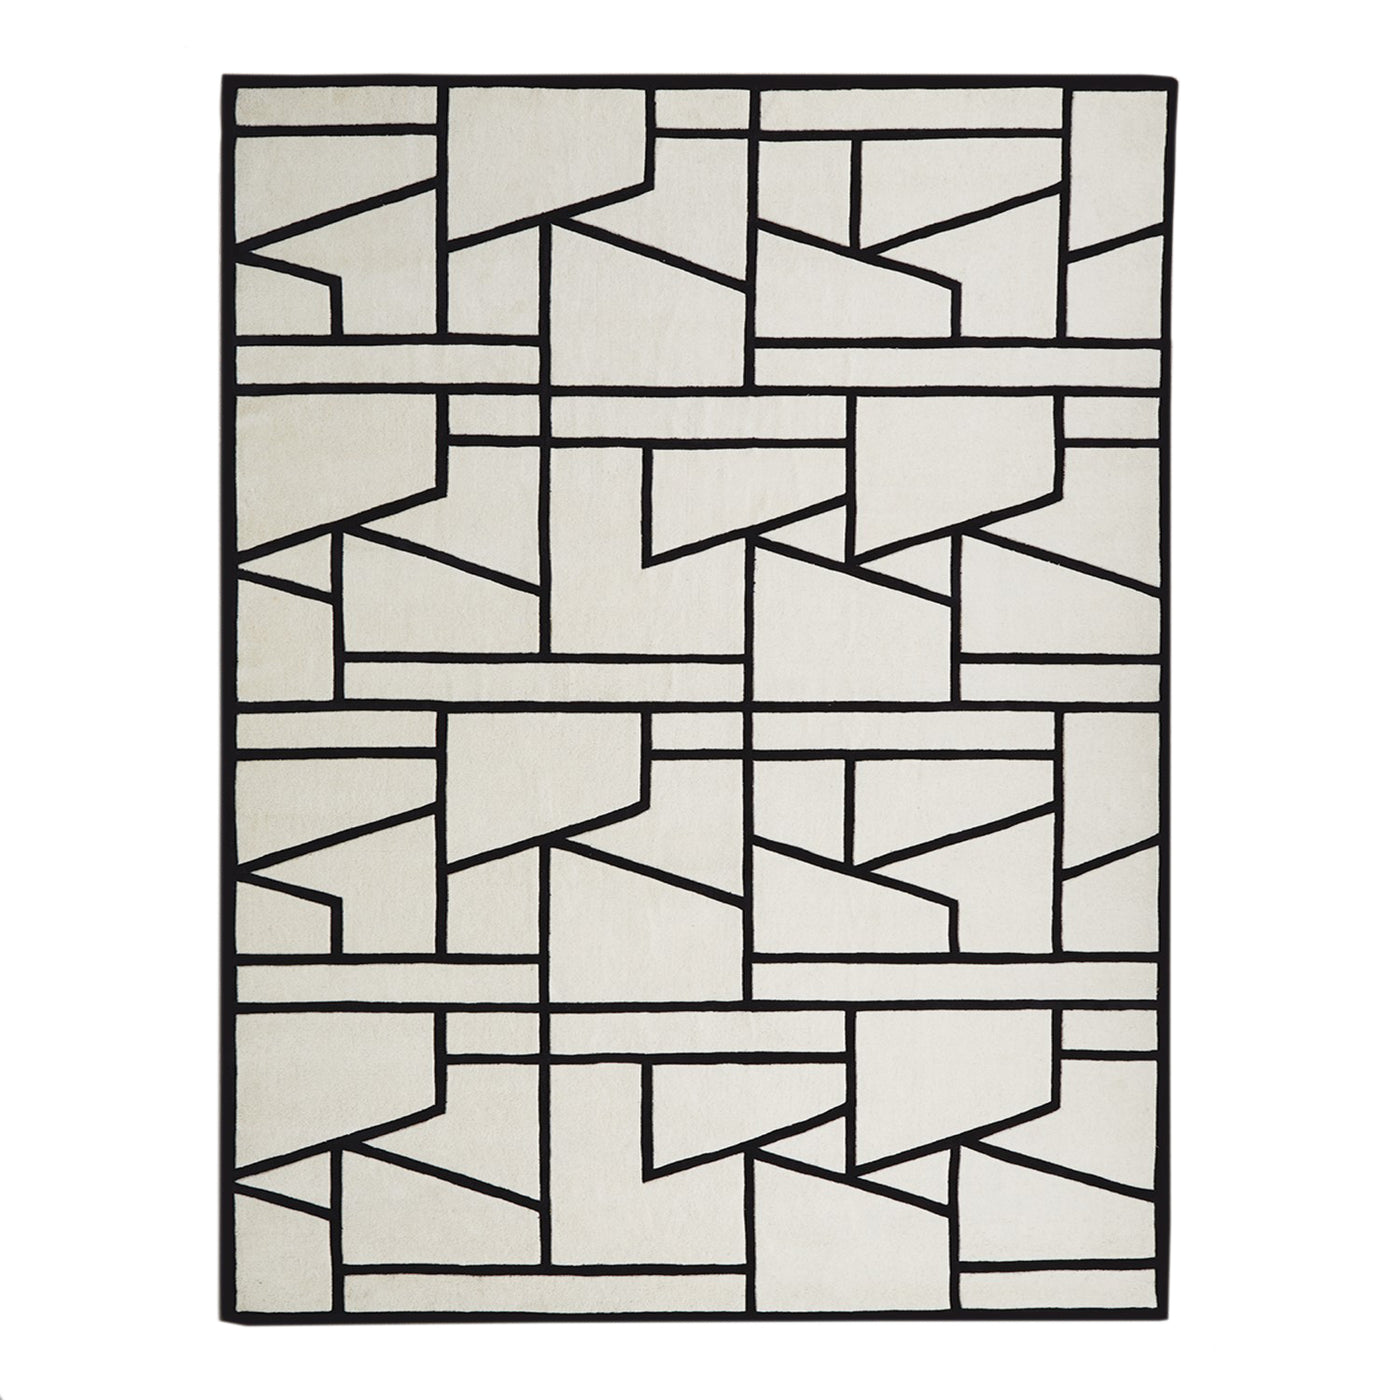 global views zig zag rug MC-9.90007, MC-9.90006, MC-9.90005, MC-9.90004, black, ivory, geometric rug, rug